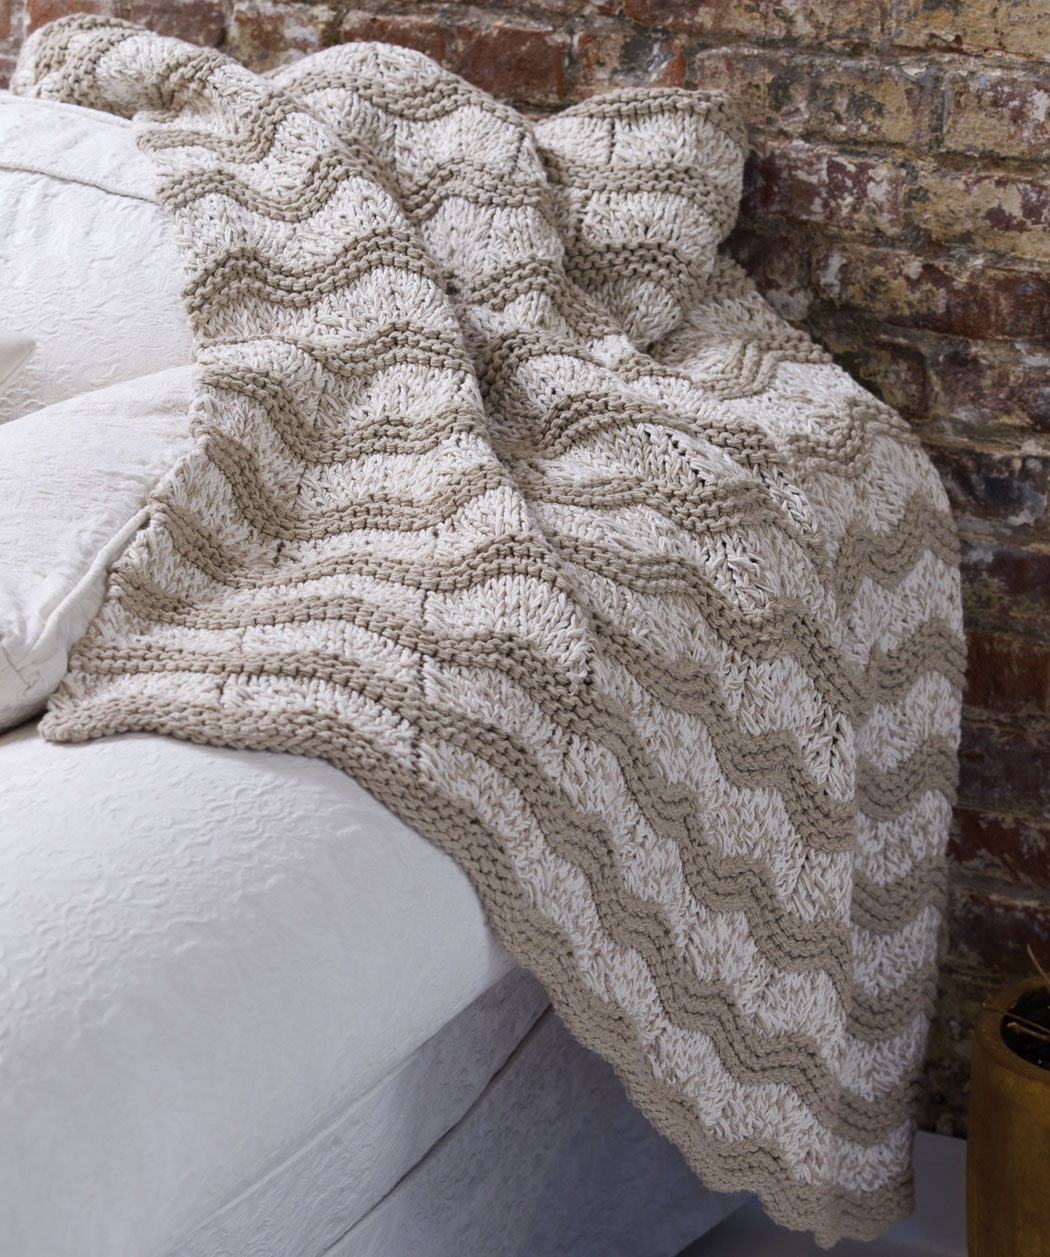 Knitting Blogs : Knitted Afghan Patterns A Knitting Blog